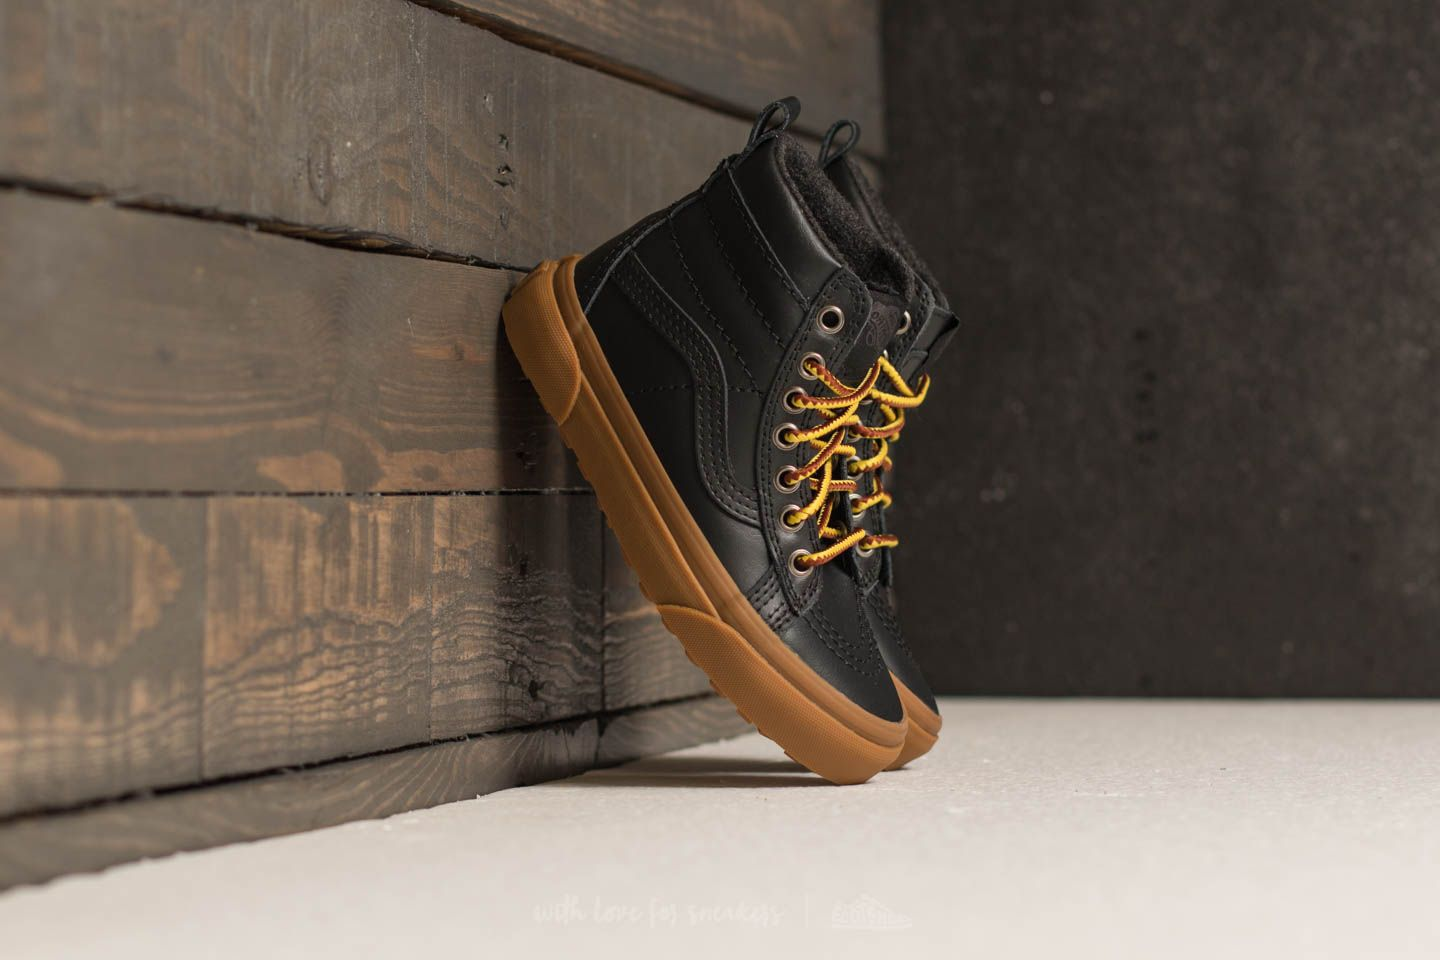 Vans Sk8-hi (mte) Black/ Leather/ Gum